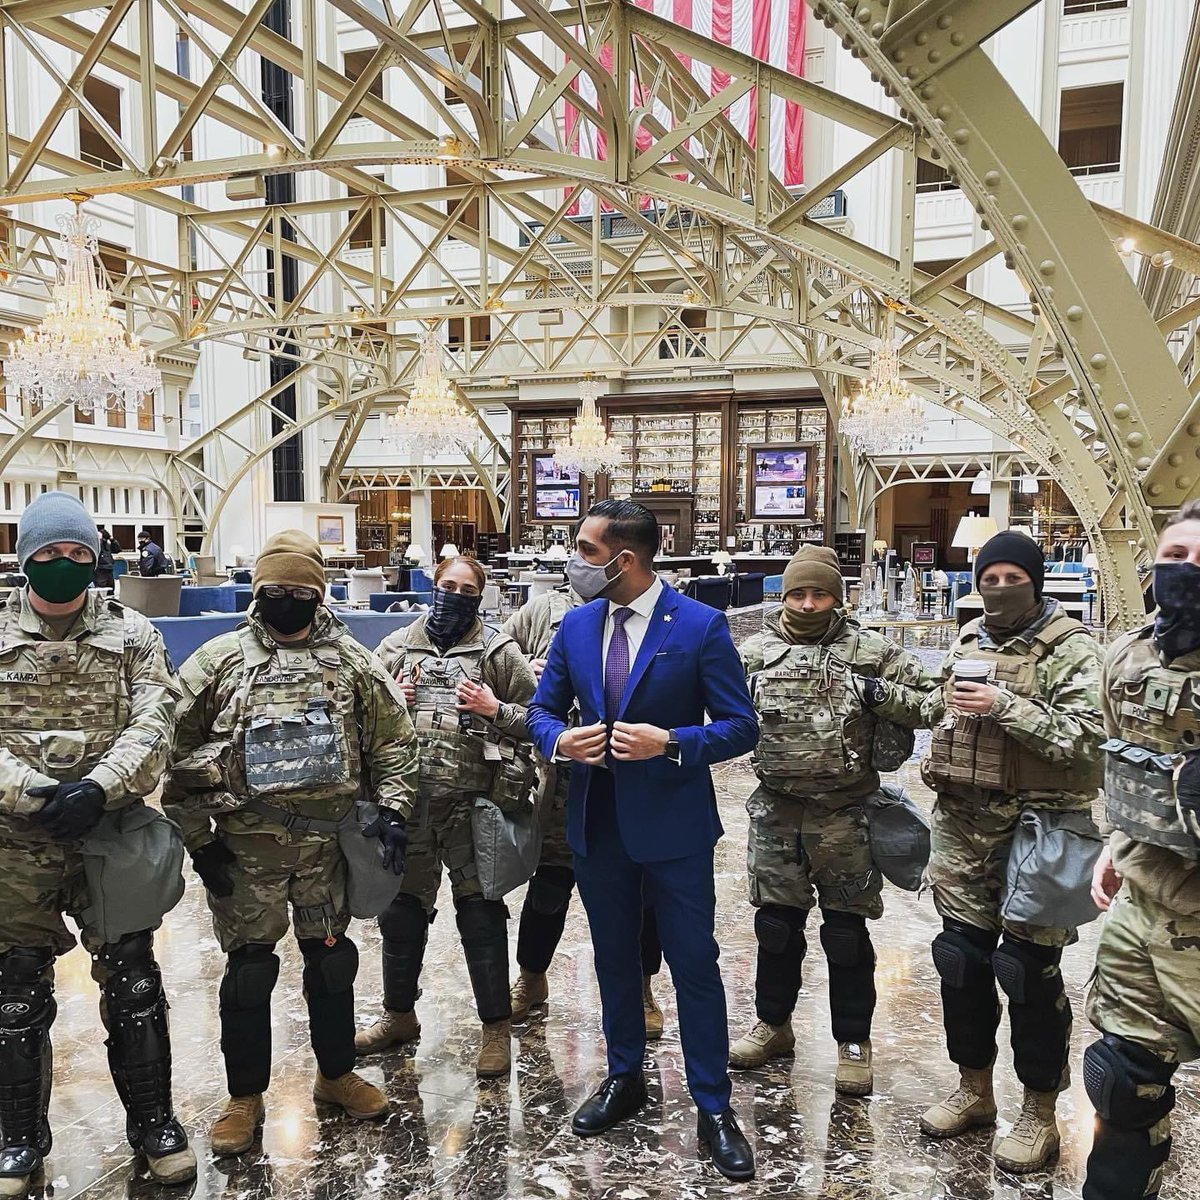 Our Director of Attache taking care of our great @NationalGuard men and women...THANK YOU again for all your support this week...You are the BEST!!!#trump #luxuryhotels #NationalGuard #VIP #InaugurationWeek #neversettle #WashingtonDC #Thankful #USA